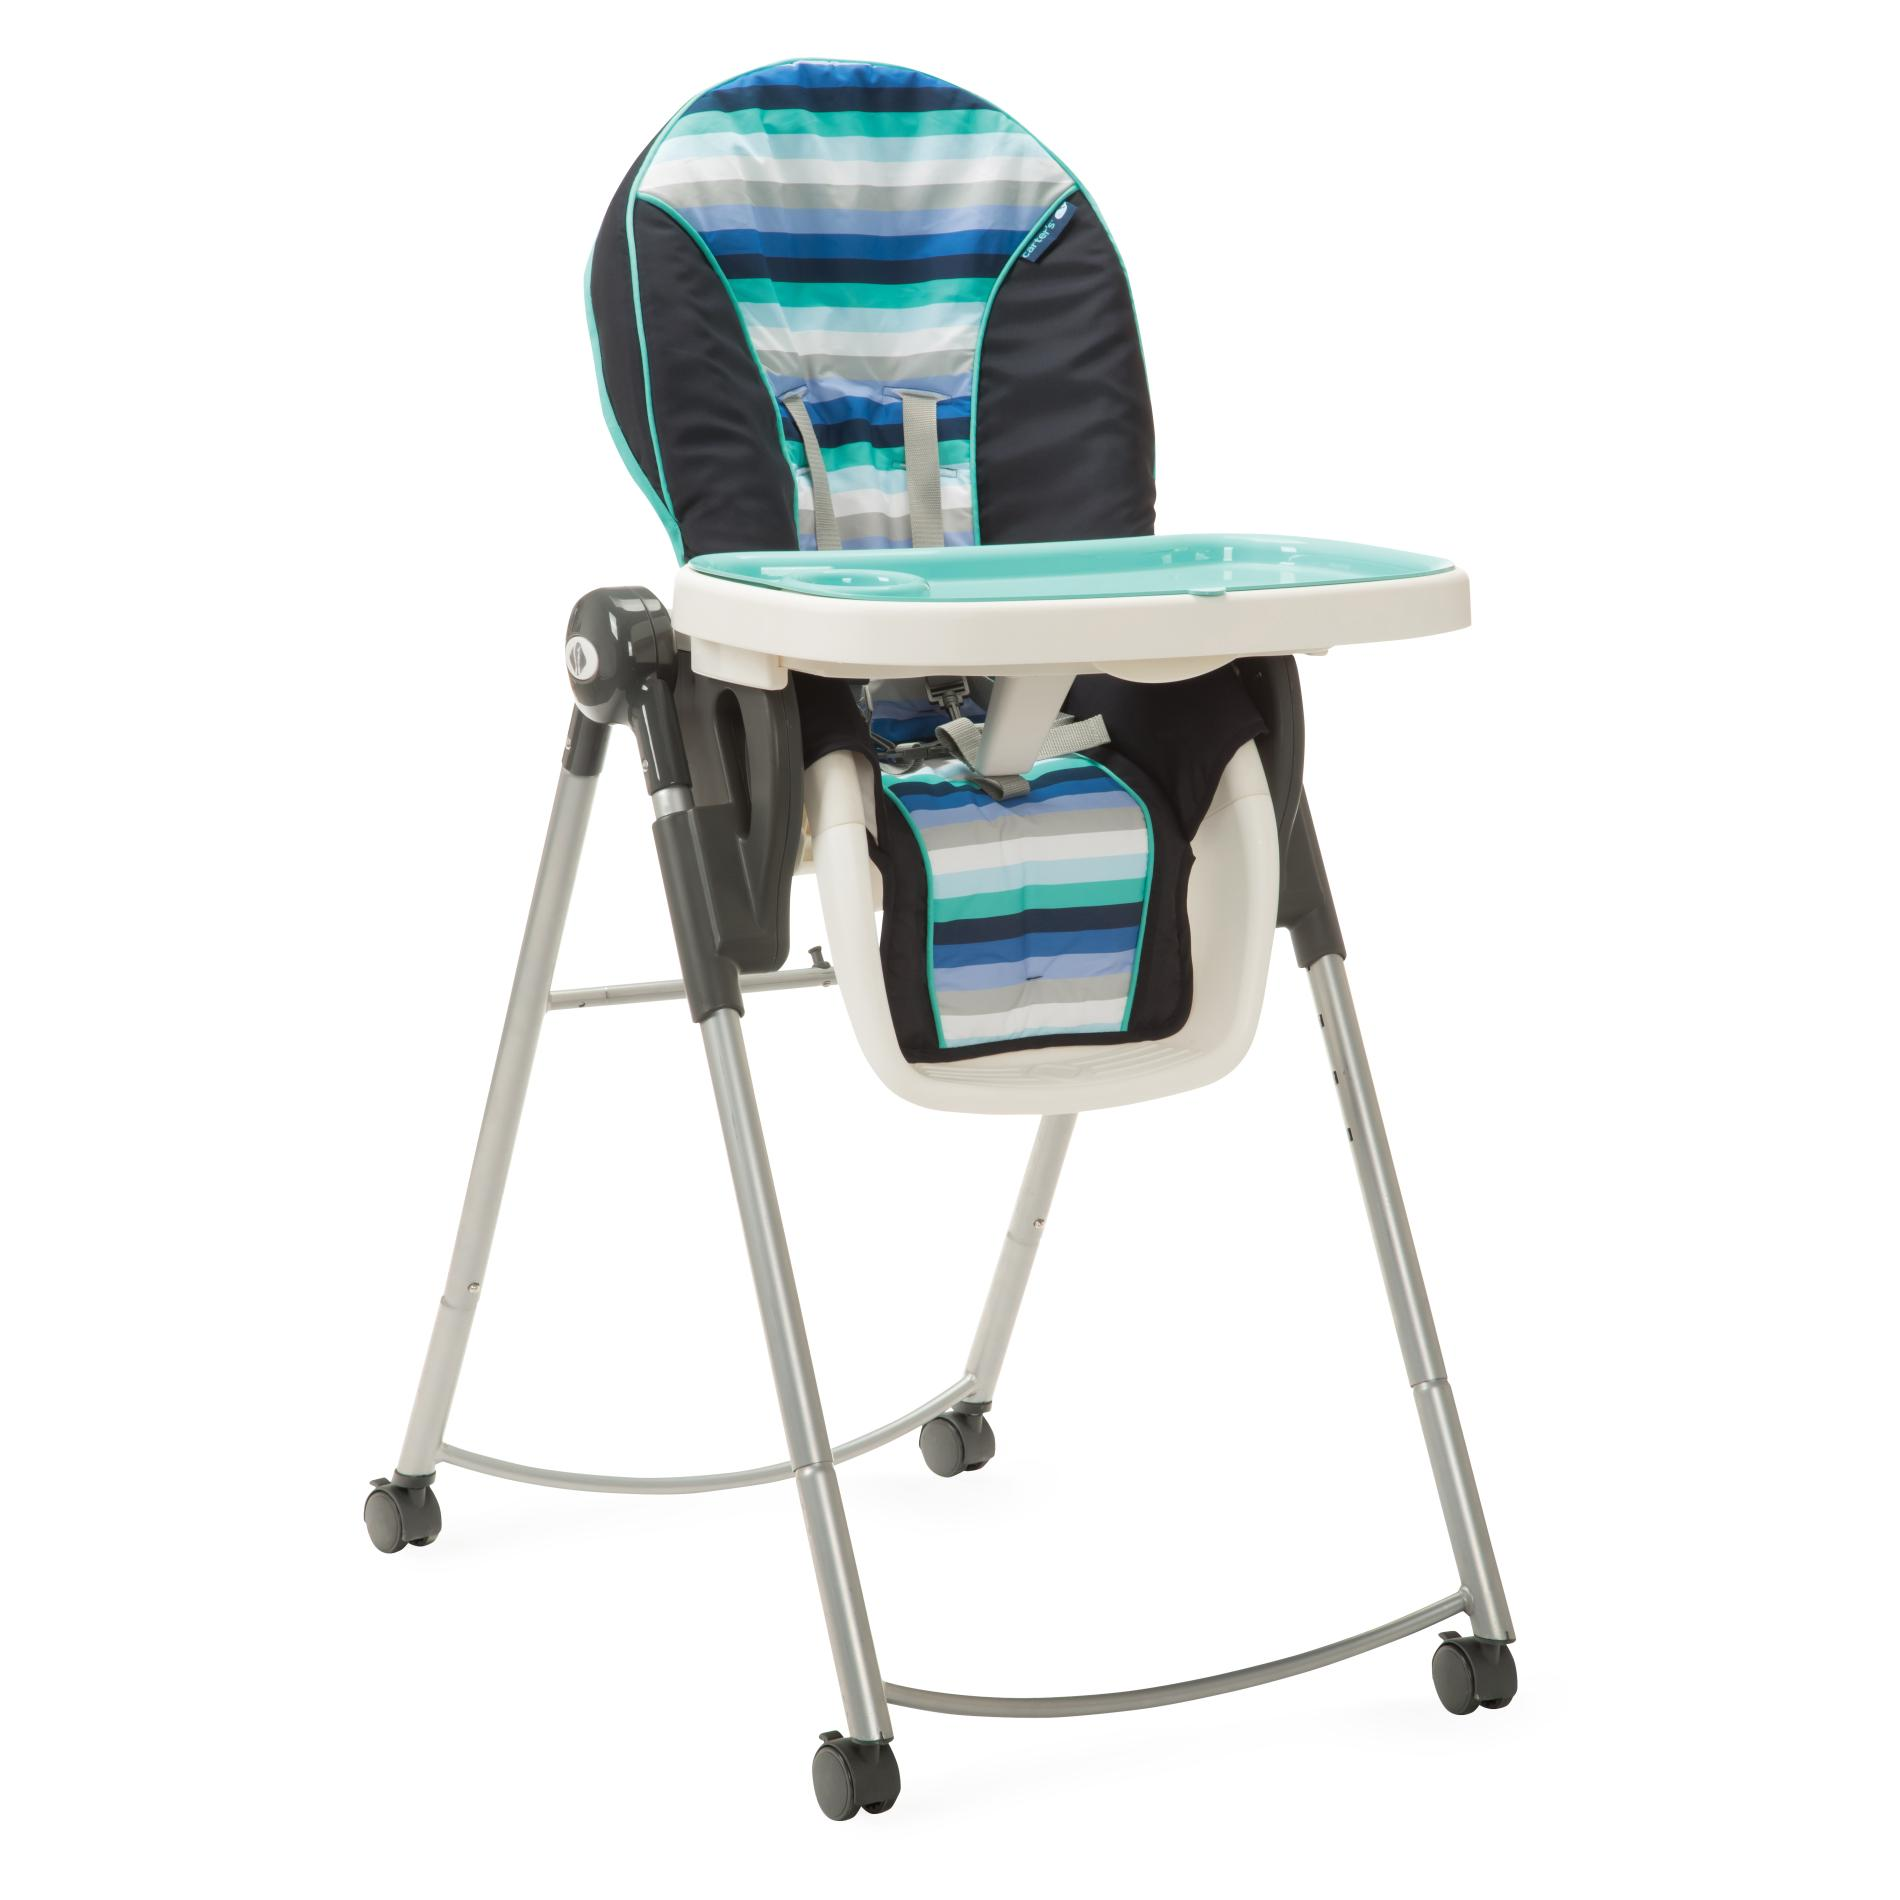 High Chair That Attaches To Chair Carter 39s Whale Of A Time High Chair